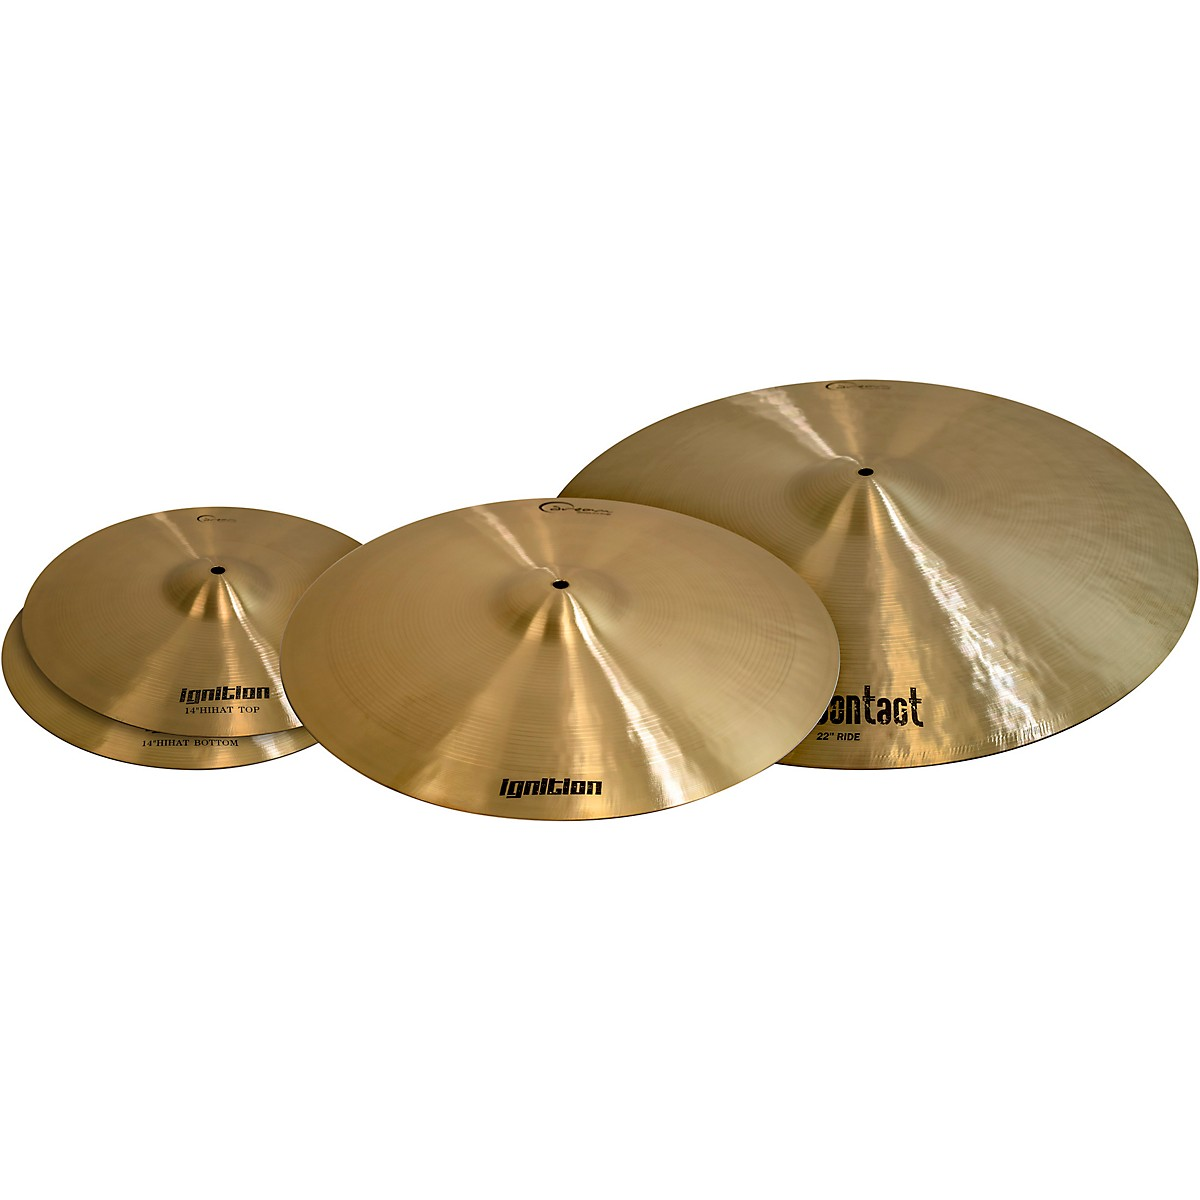 Dream Ignition 3-Piece Cymbal Pack, Large Sizes